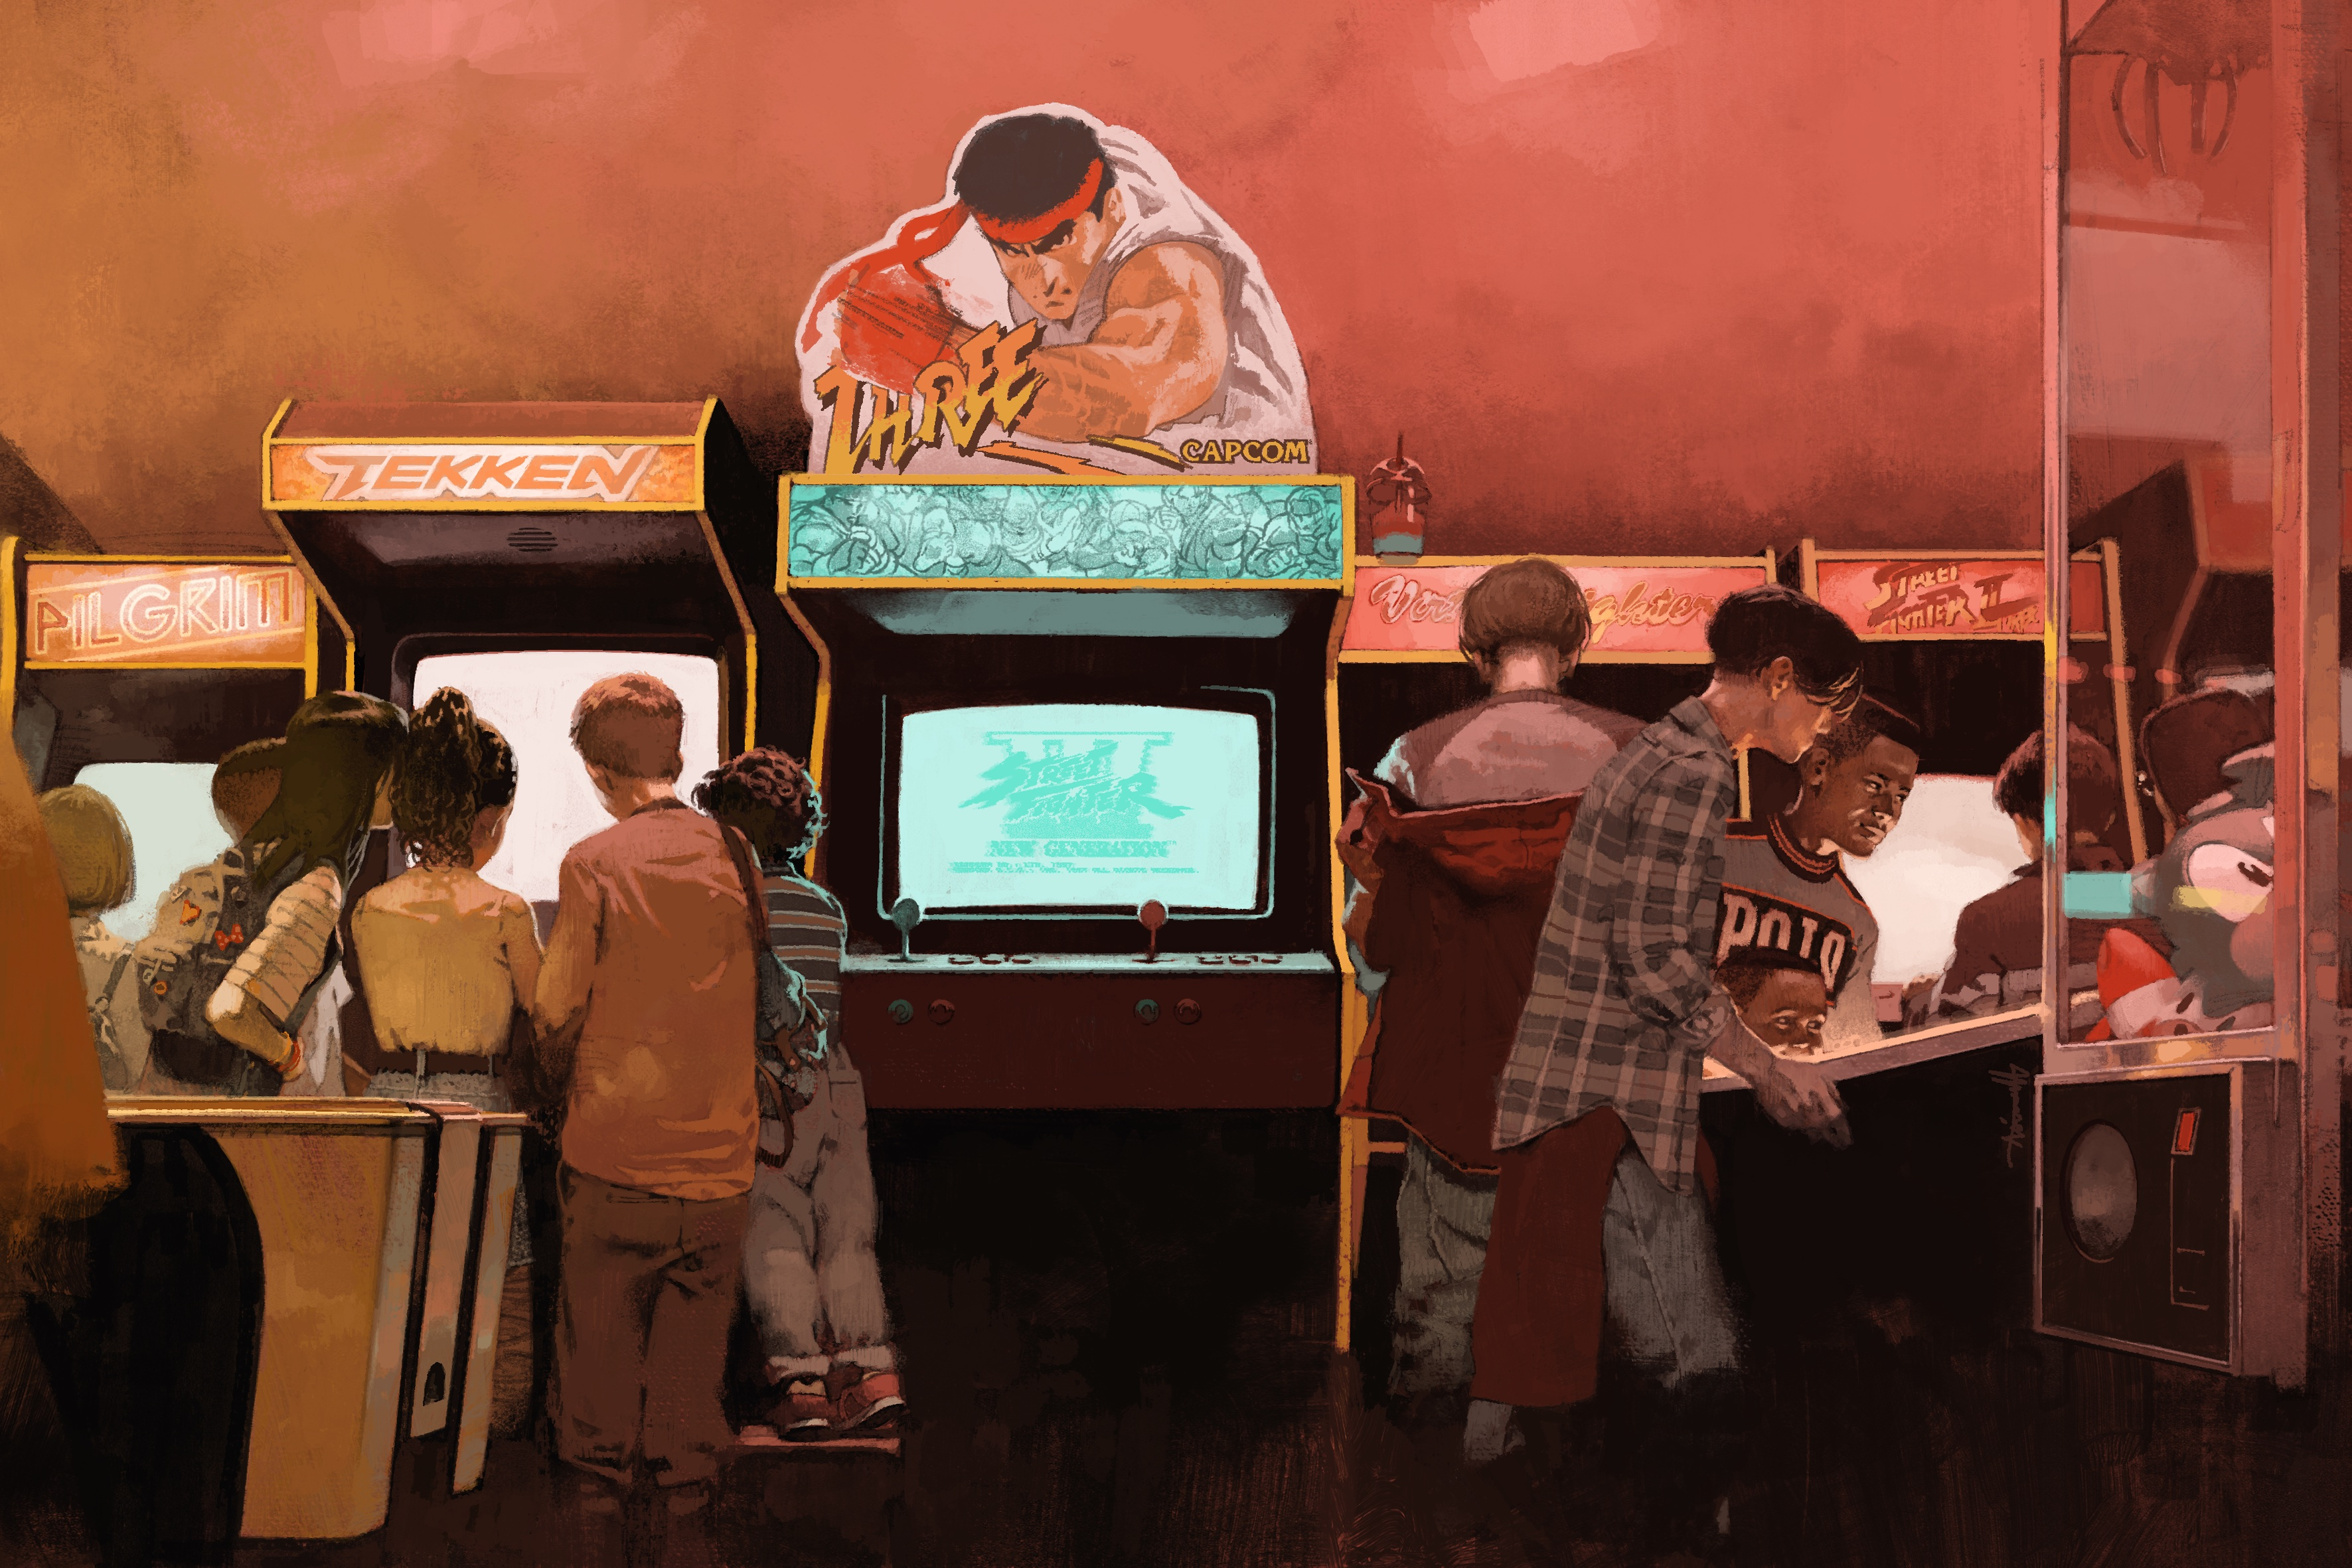 Kids play various arcade games while avoiding the Street Fighter 3 cabinet